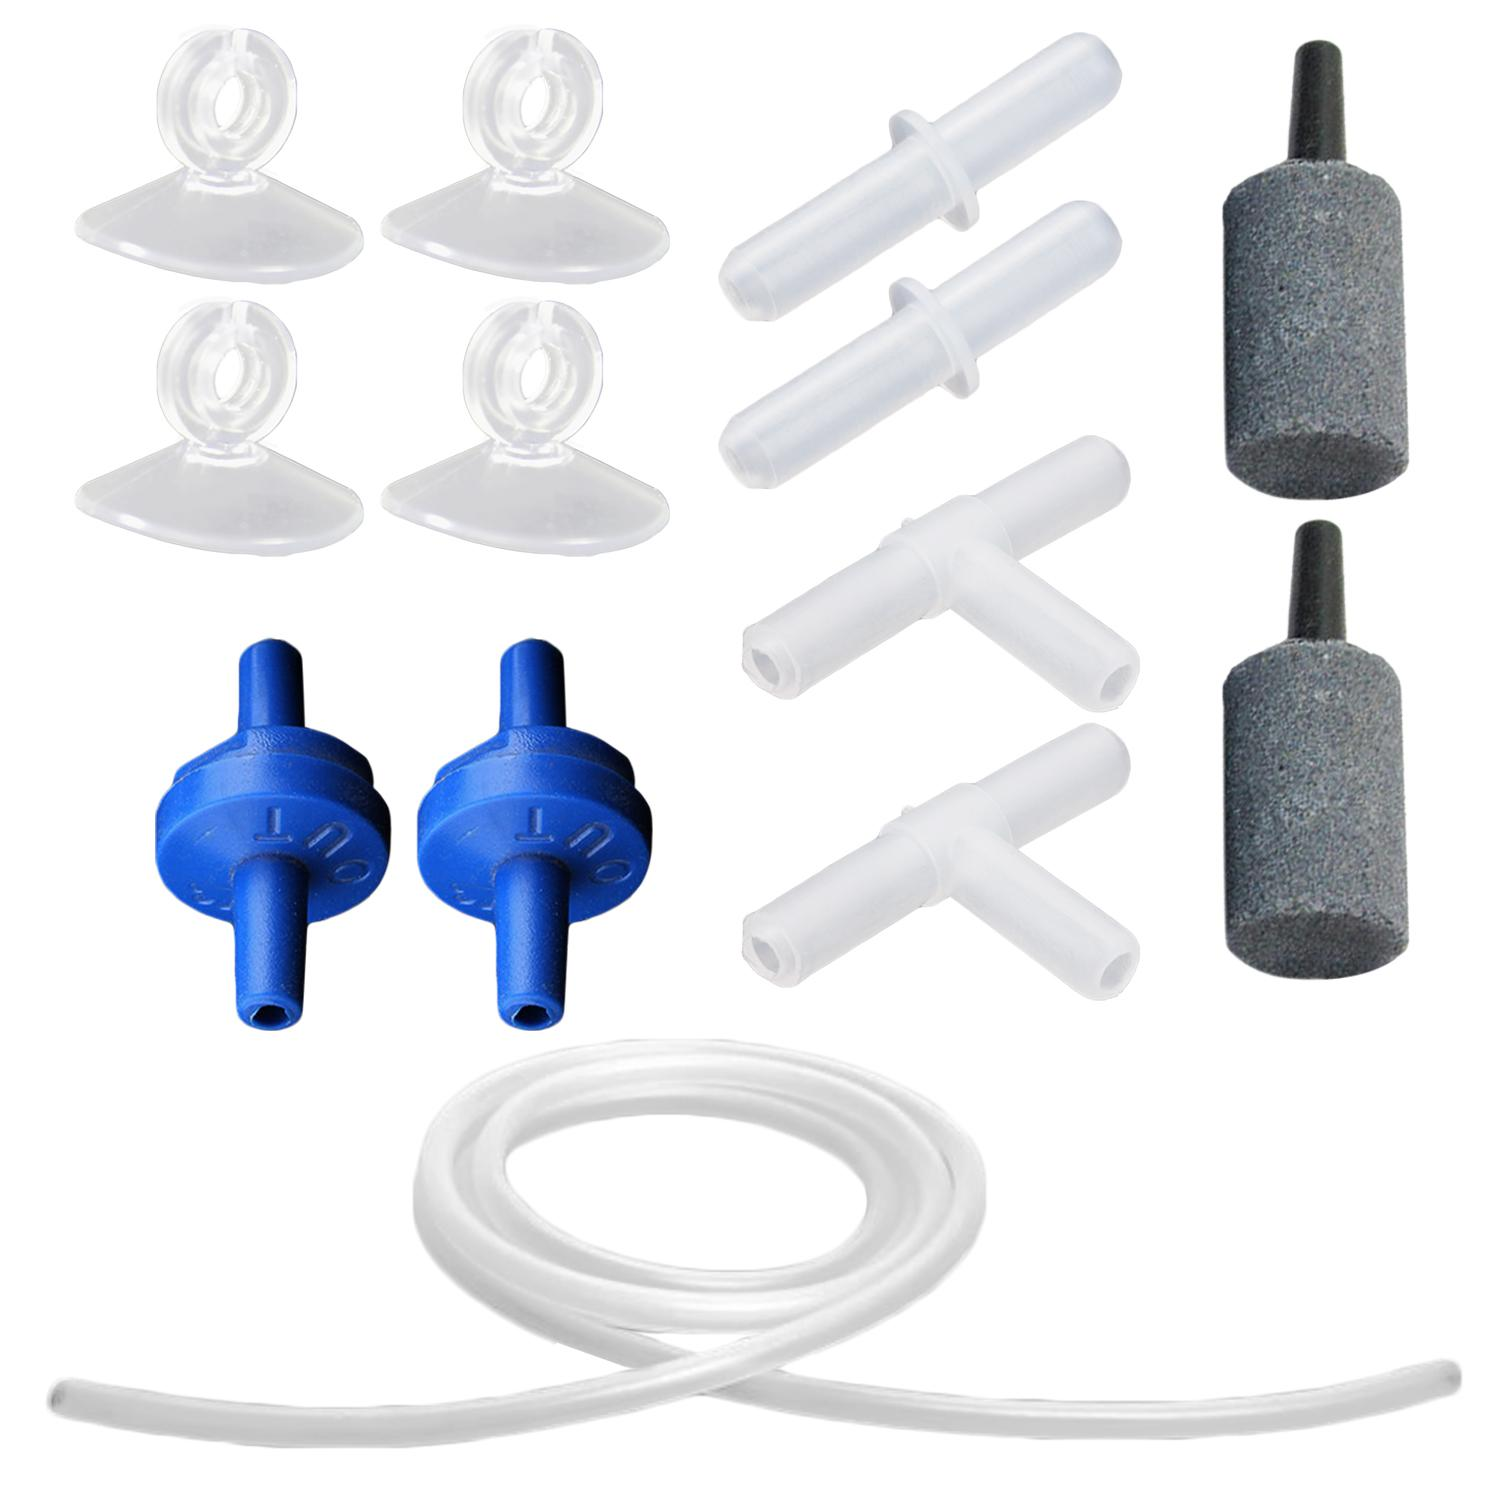 13 PCS Fish Tank Aquarium Air Pump Accessories Set Including Airline Tubing Bubble Release Air Stones